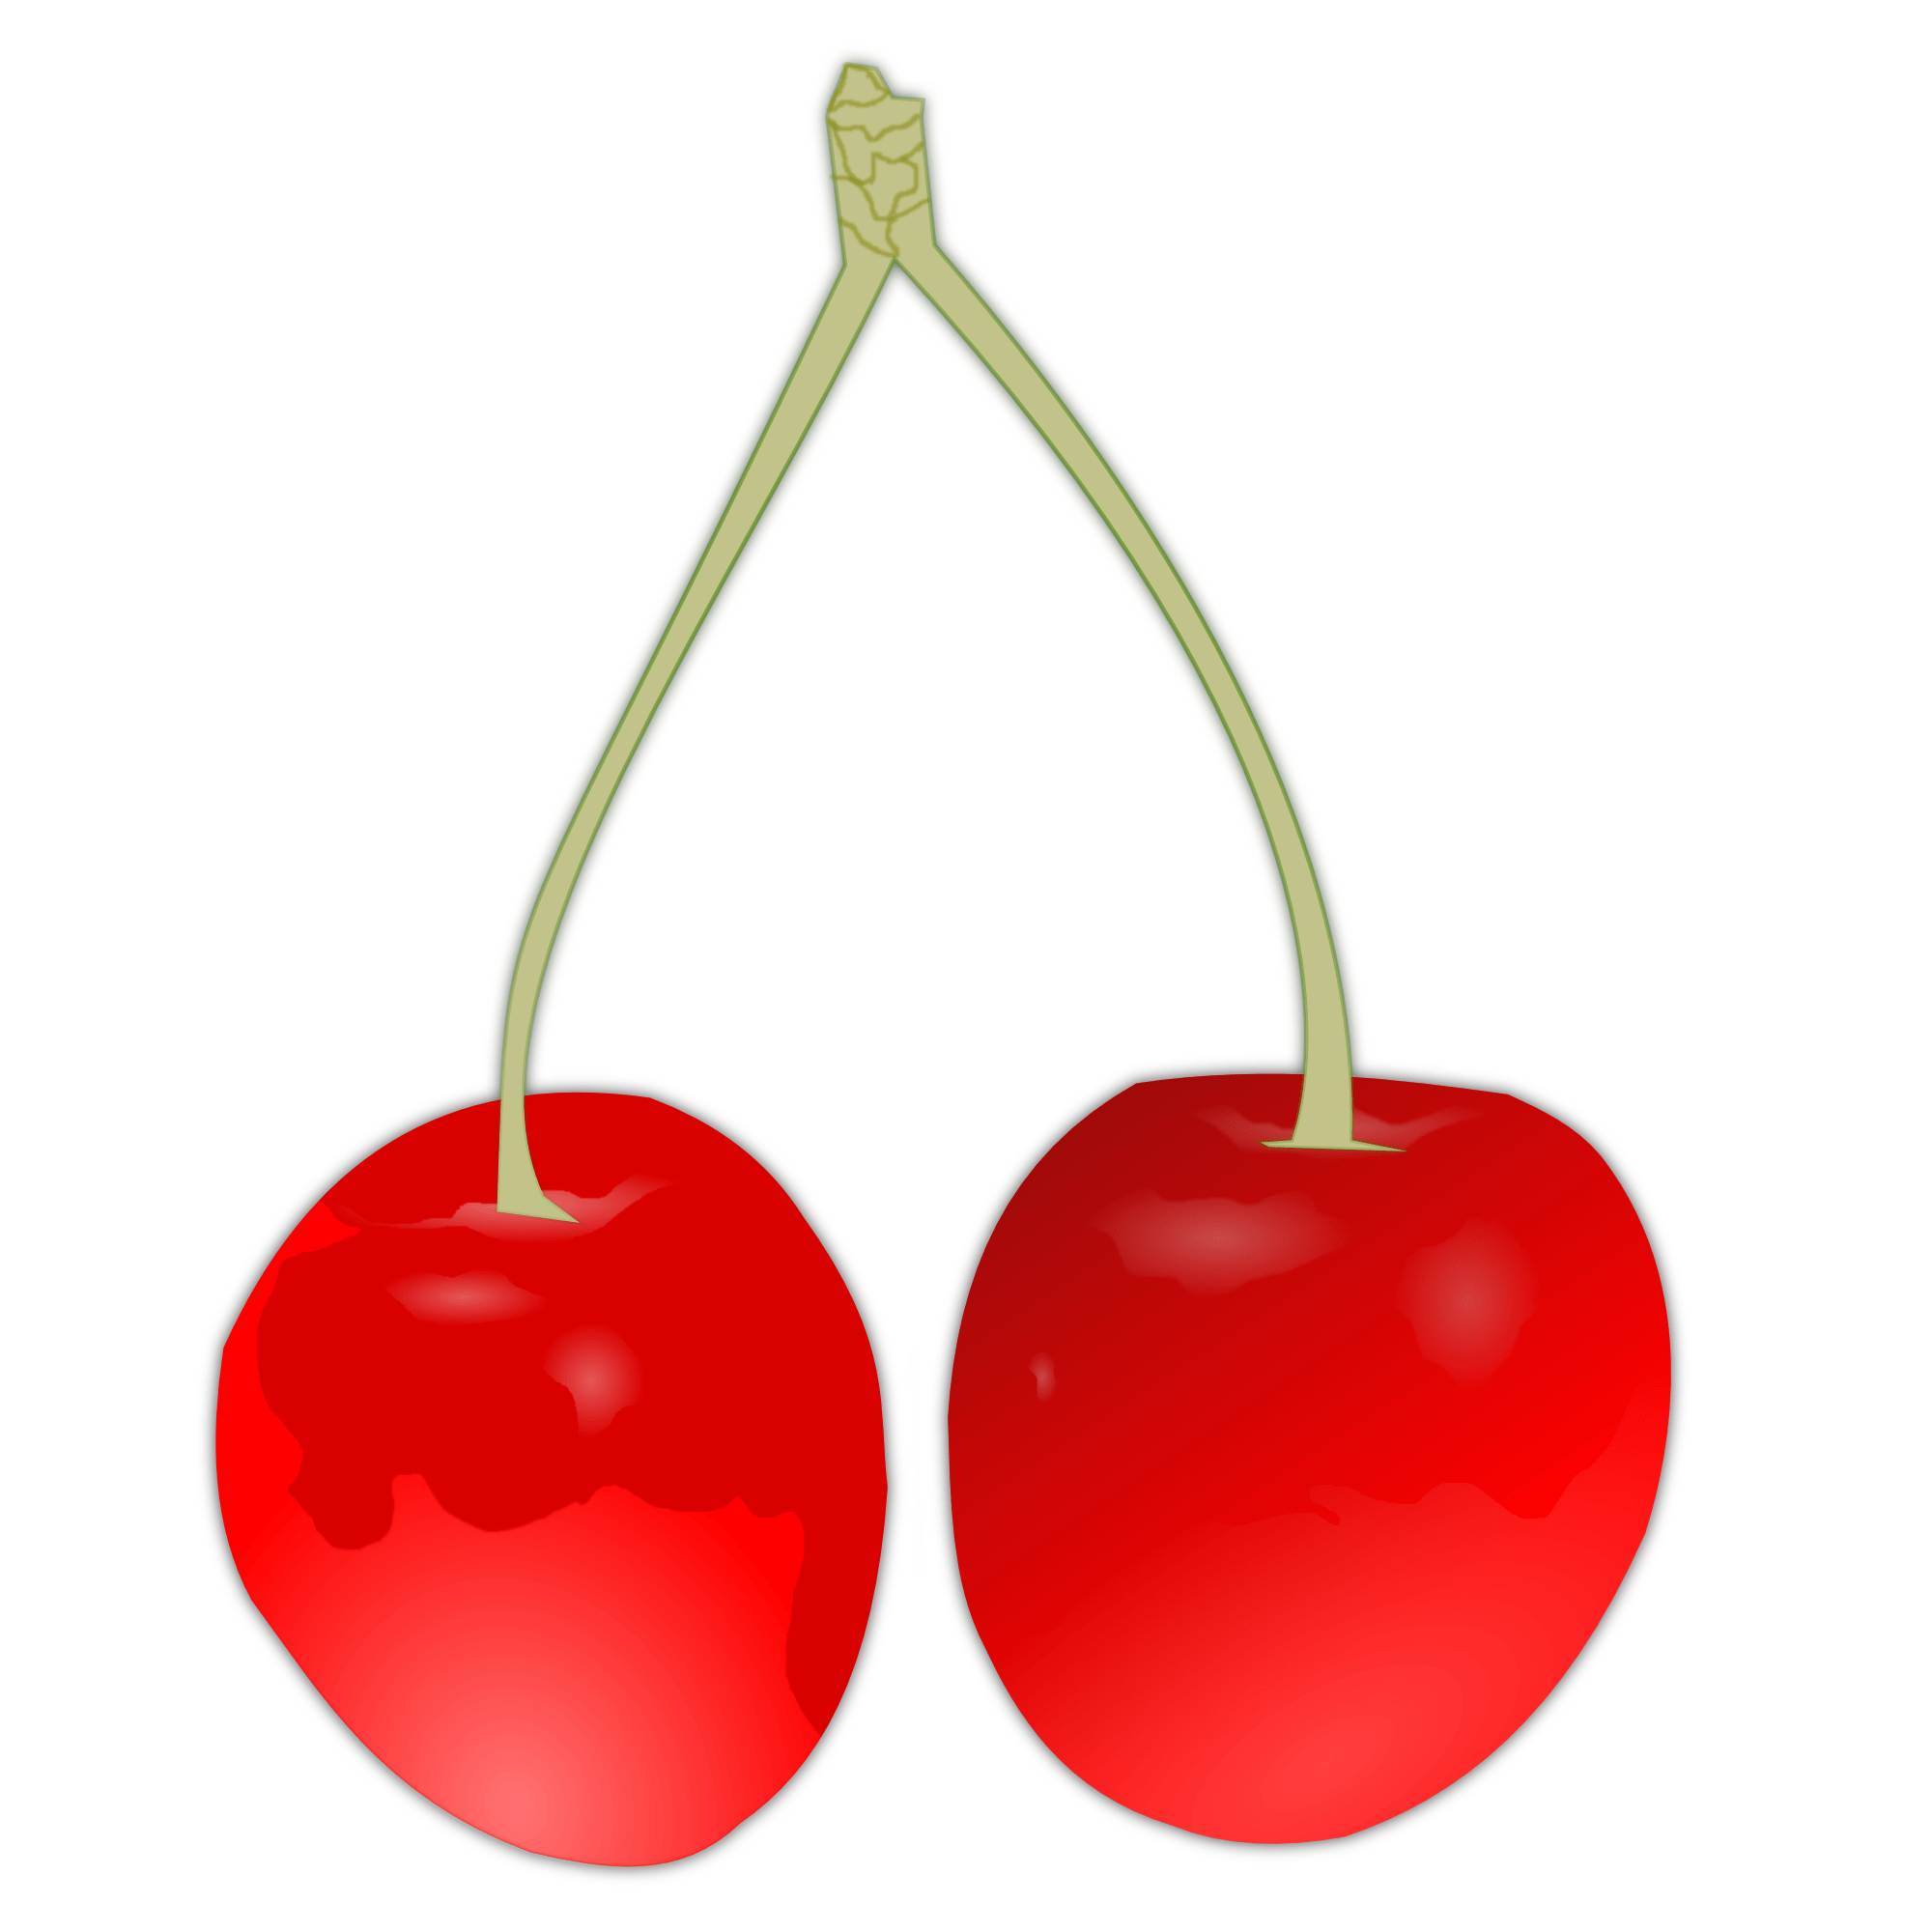 hight resolution of cherry clipart 15848